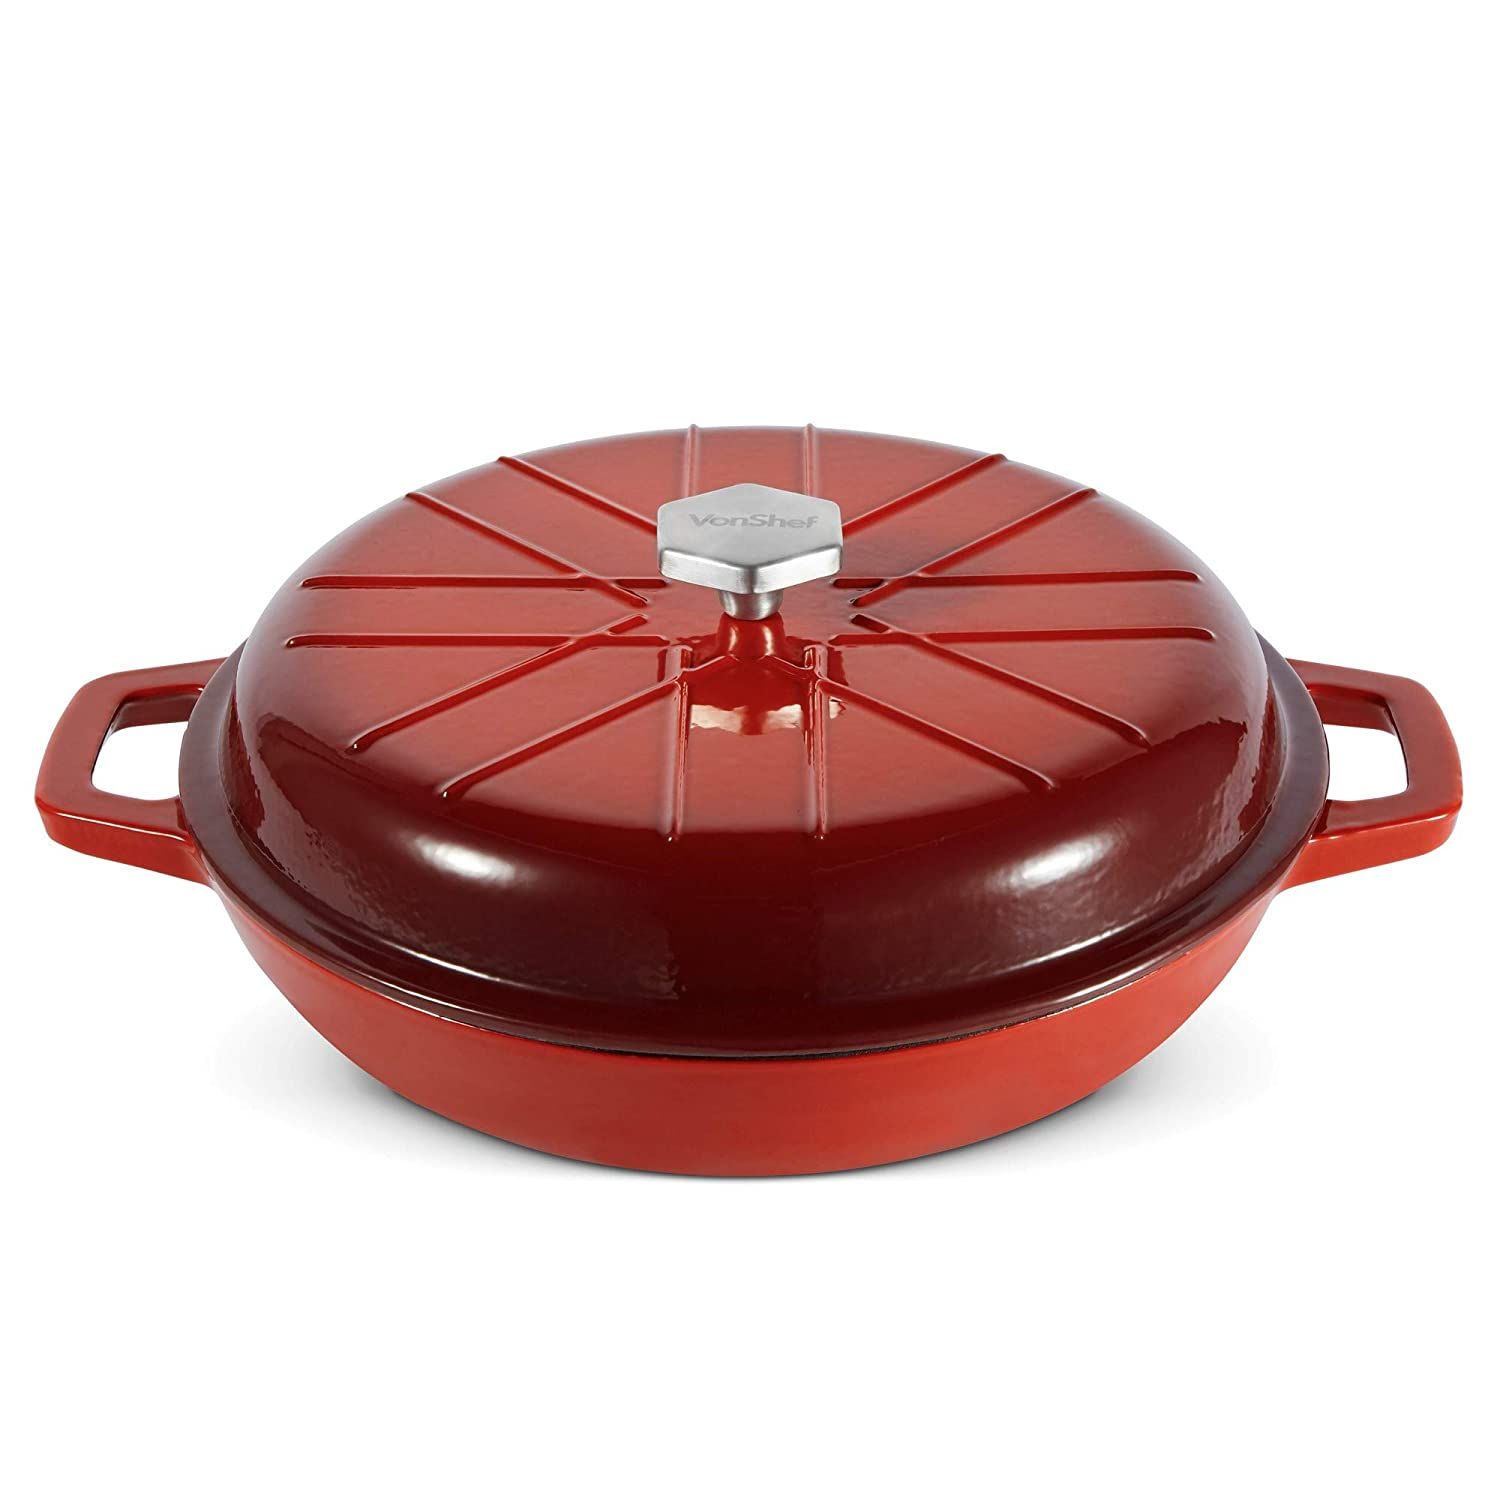 VonShef Cast Iron Shallow Dutch Oven Casserole Dish Braiser Pan With Non-Stick Enamel Coating, Signature VonShef Style Stew Pot, Red Ombre, 3 Quarts